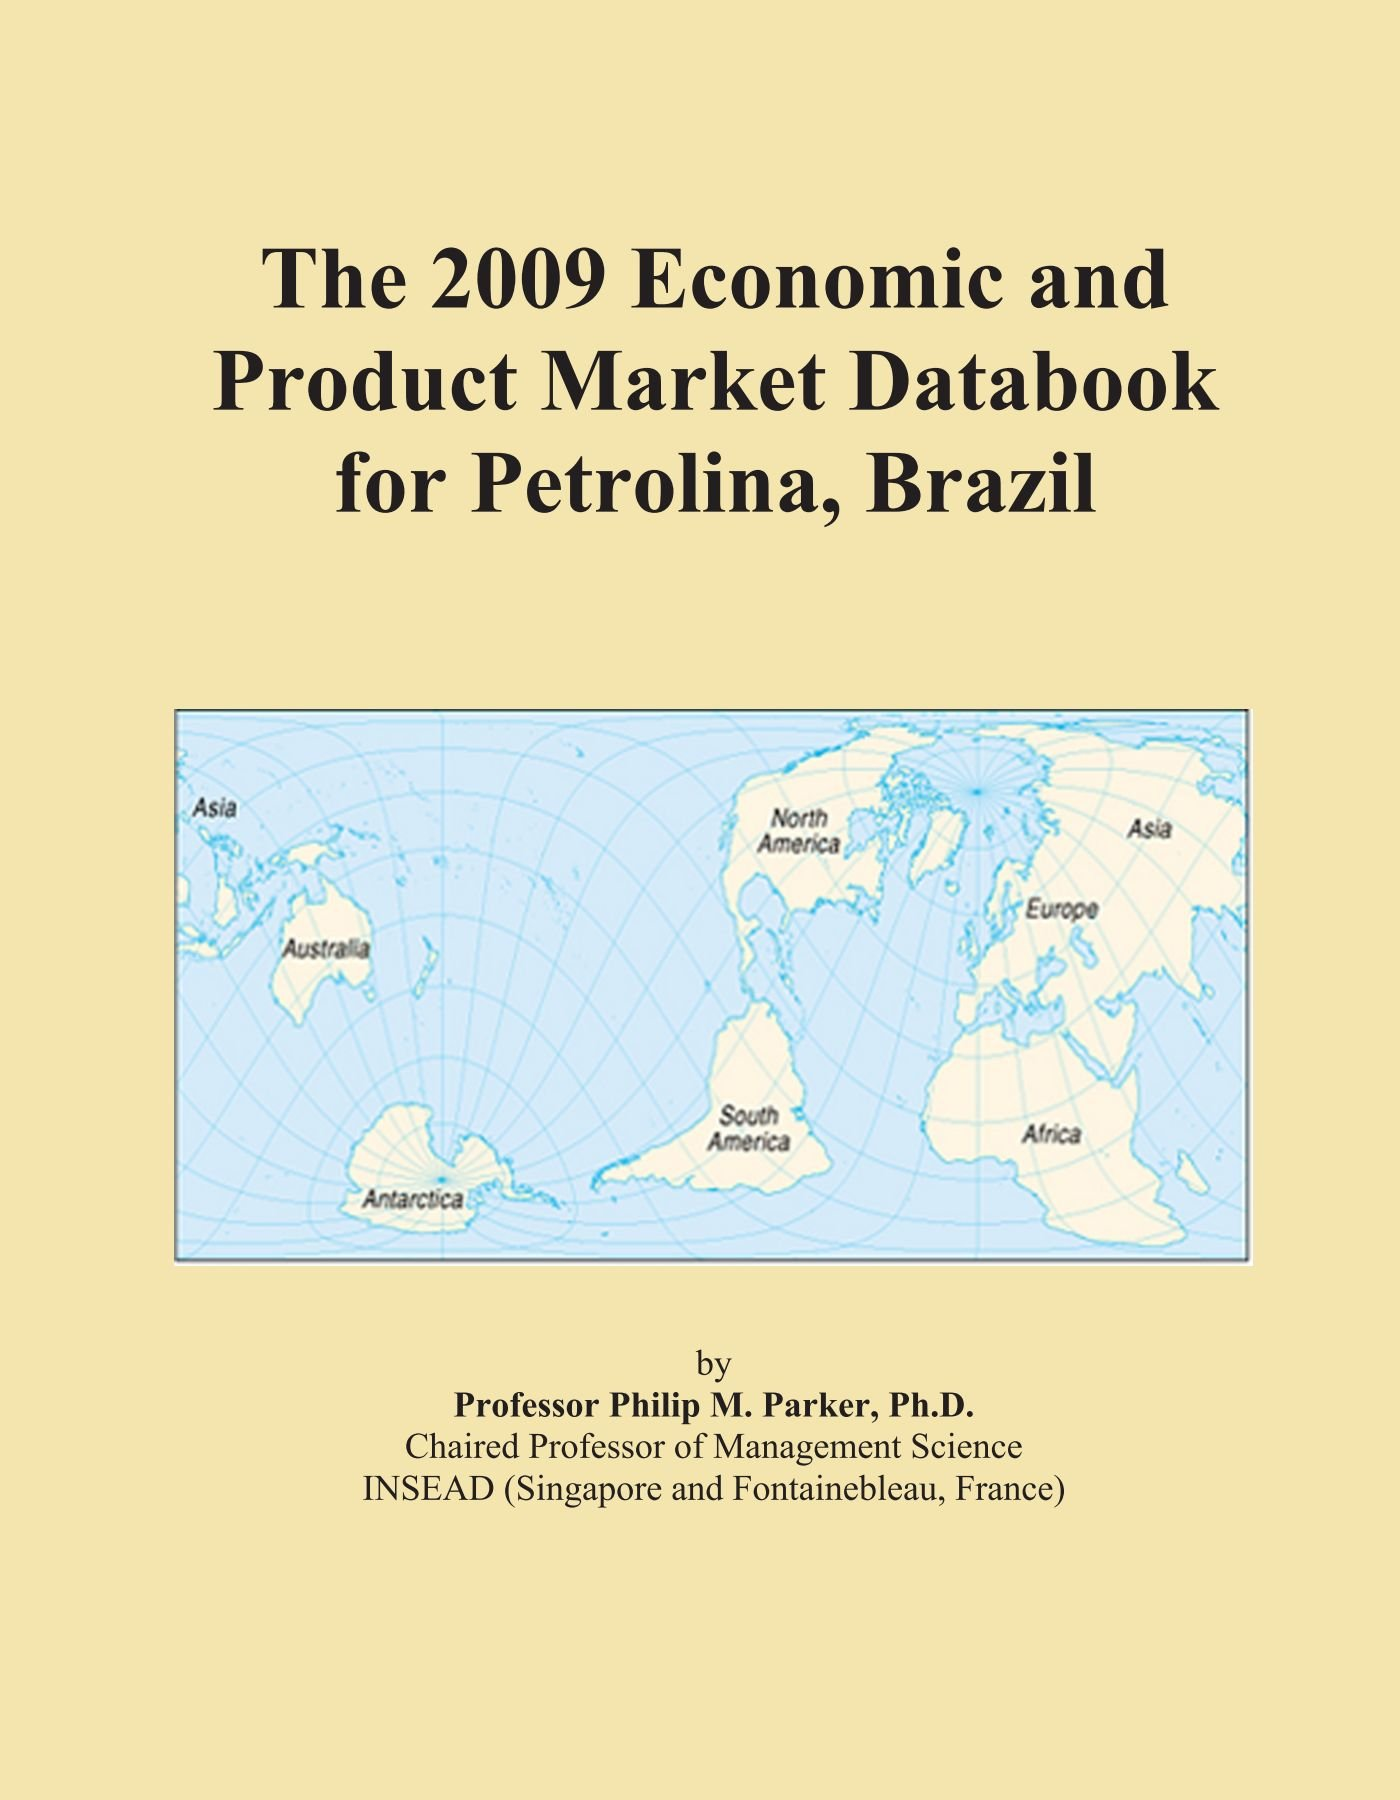 The 2009 Economic and Product Market Databook for Petrolina, Brazil pdf